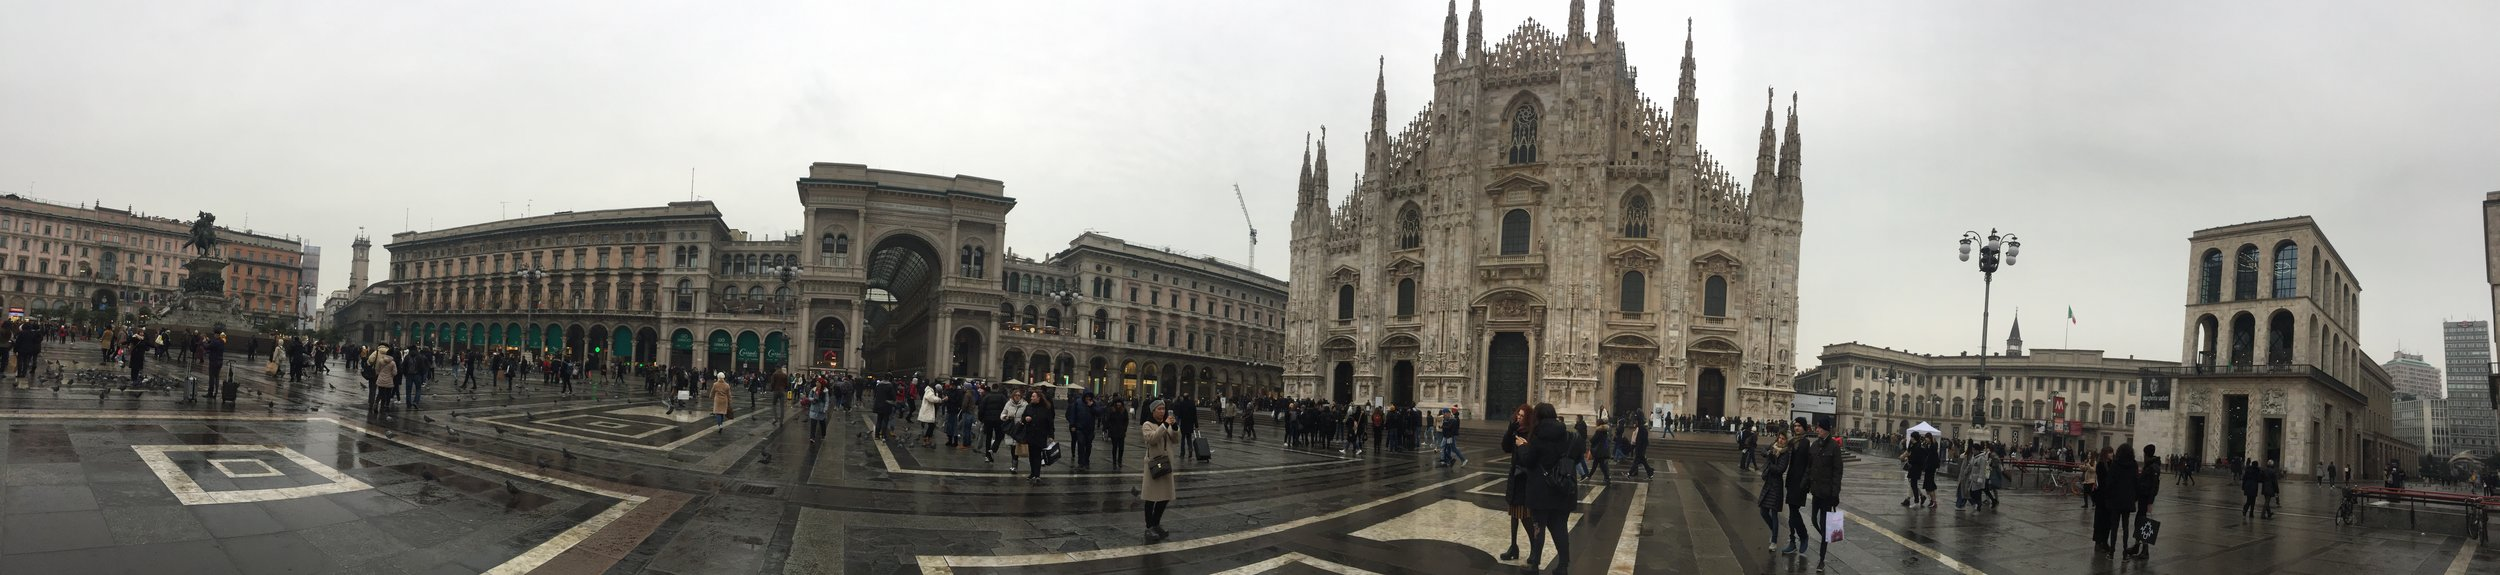 a chilly, grey day for Milan in January, but a winner of architectural beauty.